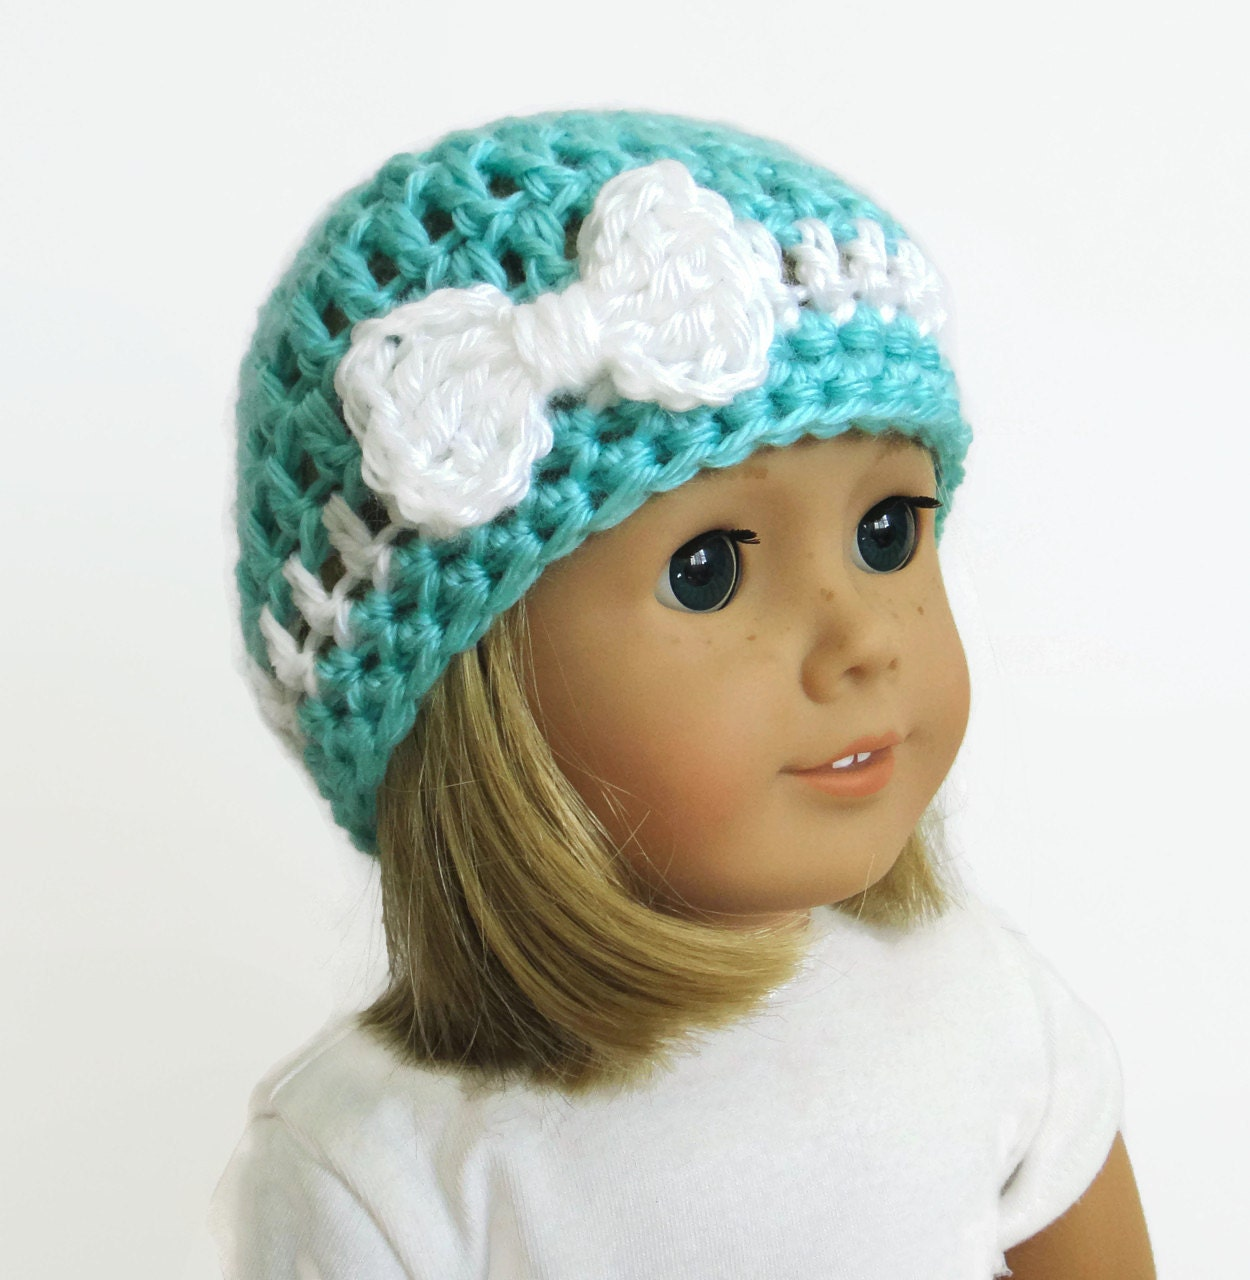 Knitting Pattern For Dolls Beanie : 18 inch doll hat crochet doll clothes doll beanie with bow